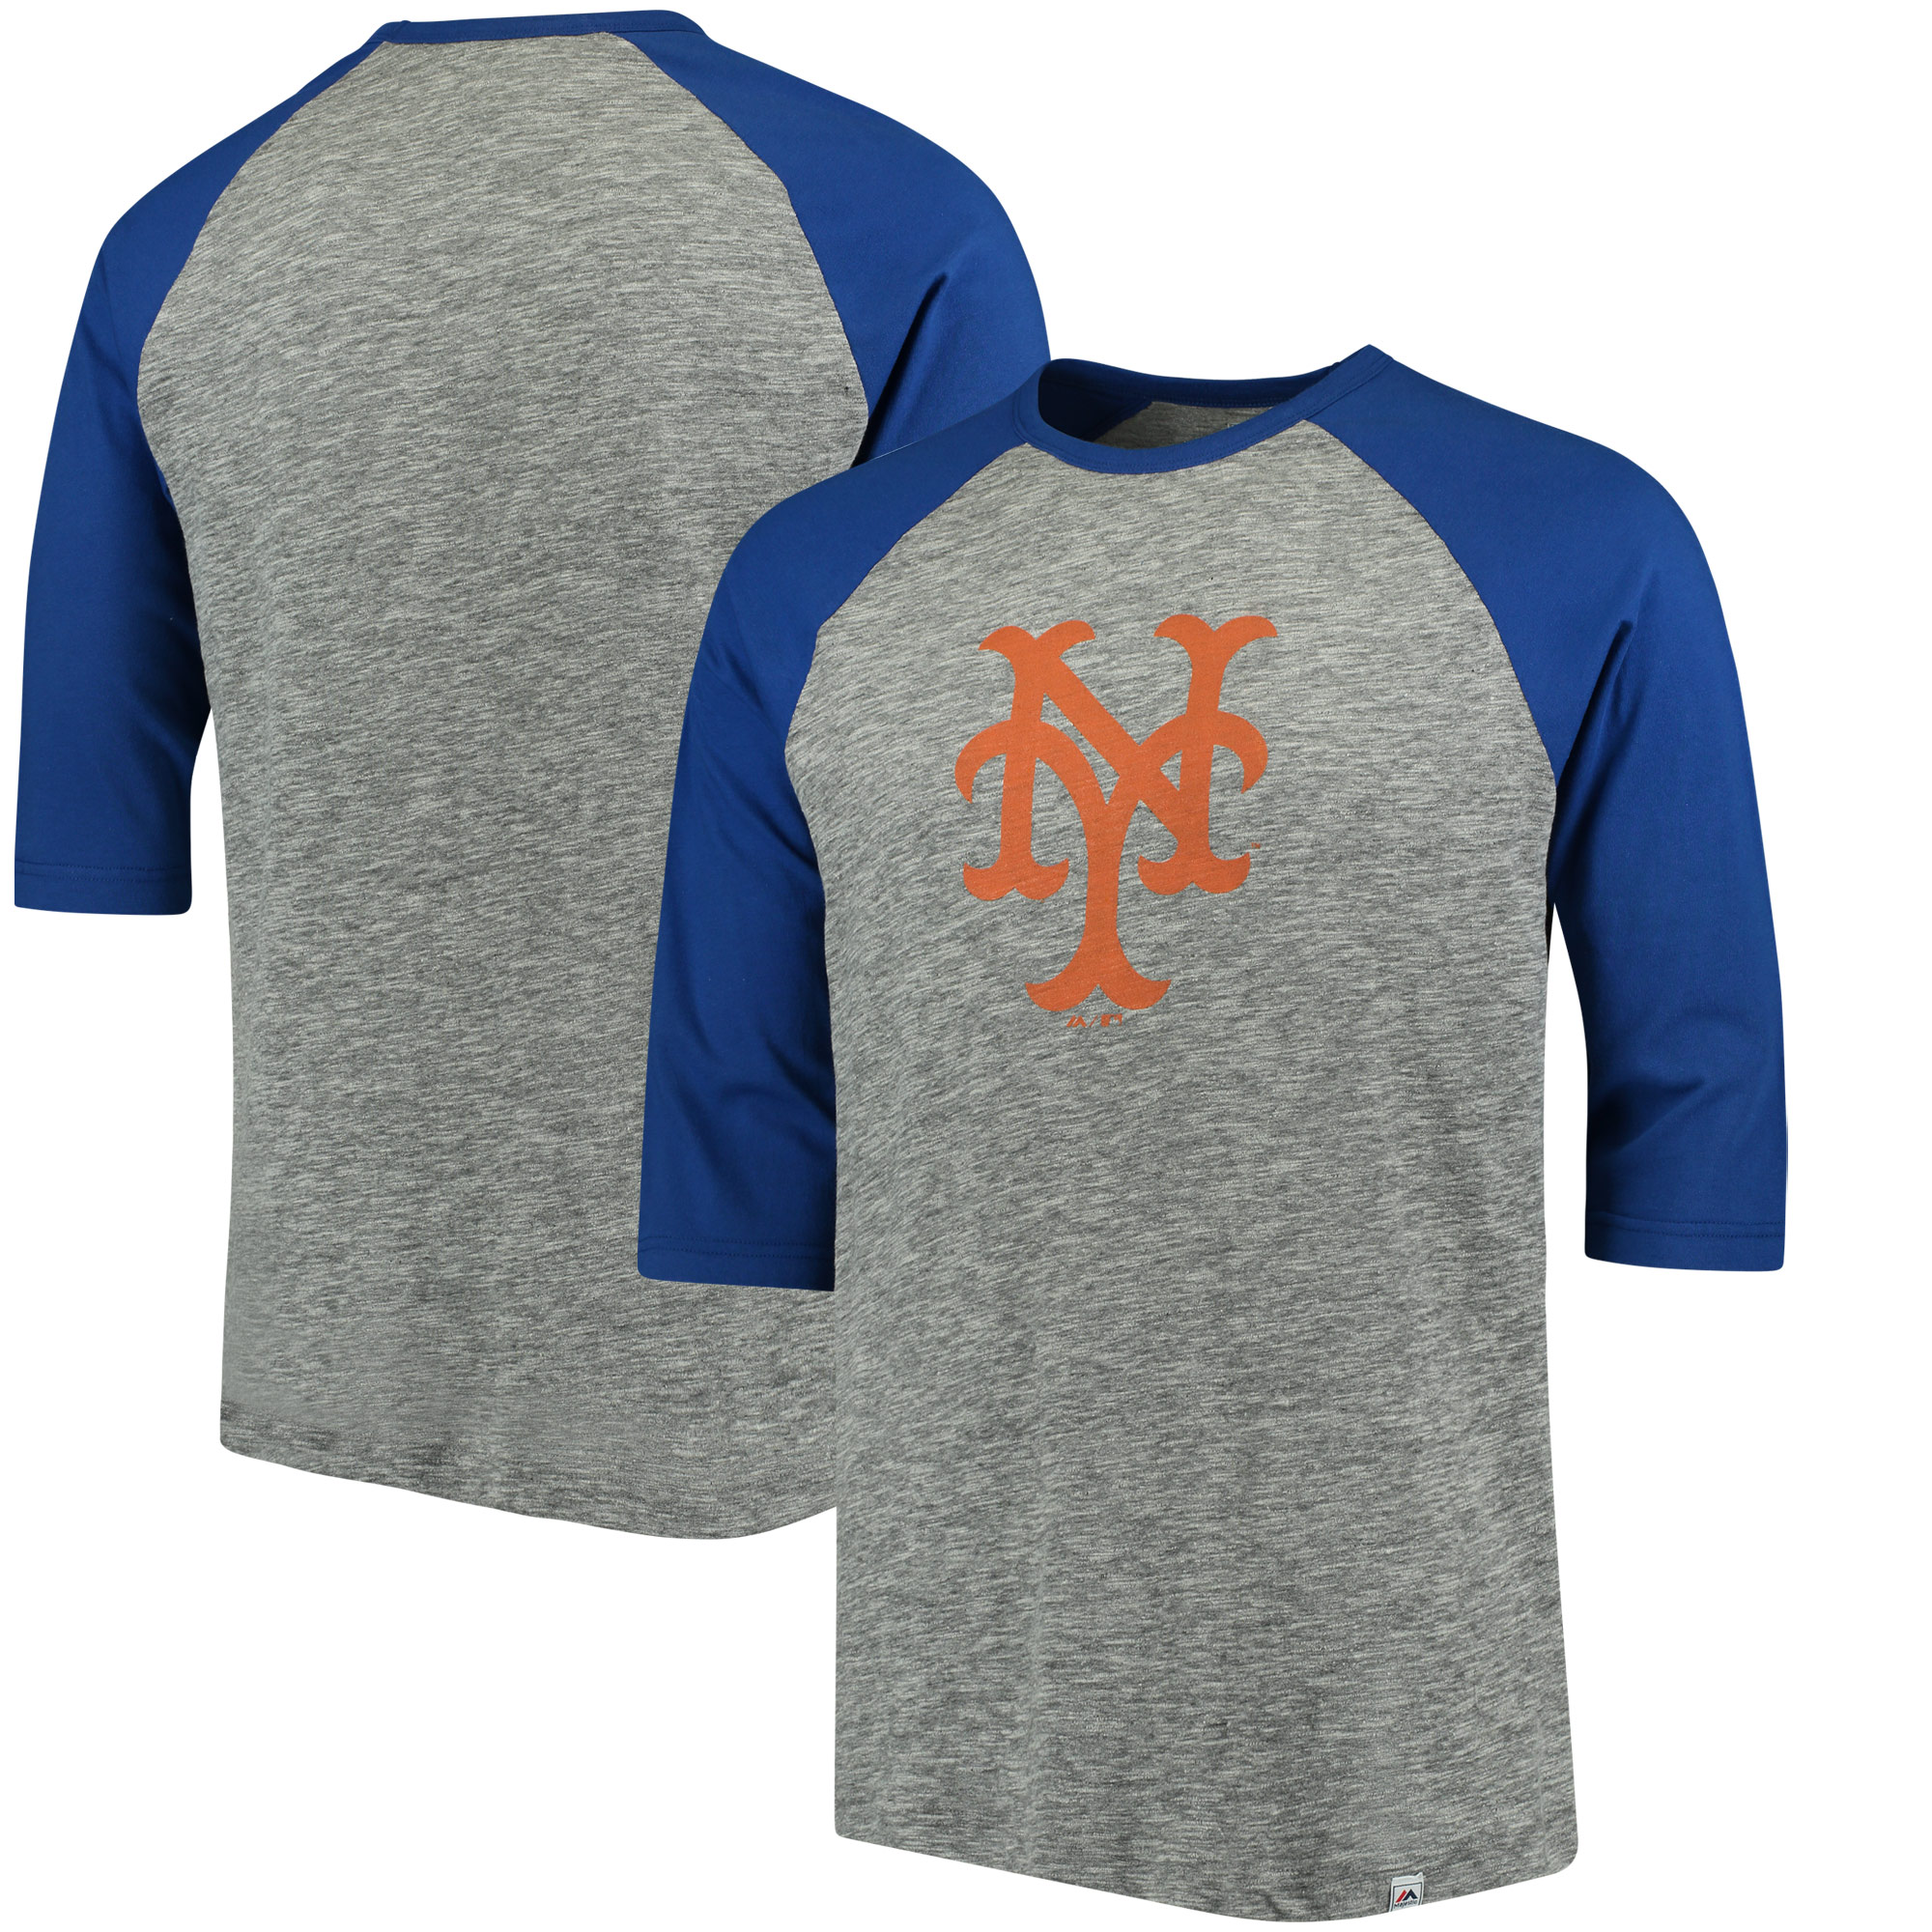 New York Mets Majestic Cooperstown Collection Logo 3/4-Sleeve Raglan T-Shirt - Gray/Royal